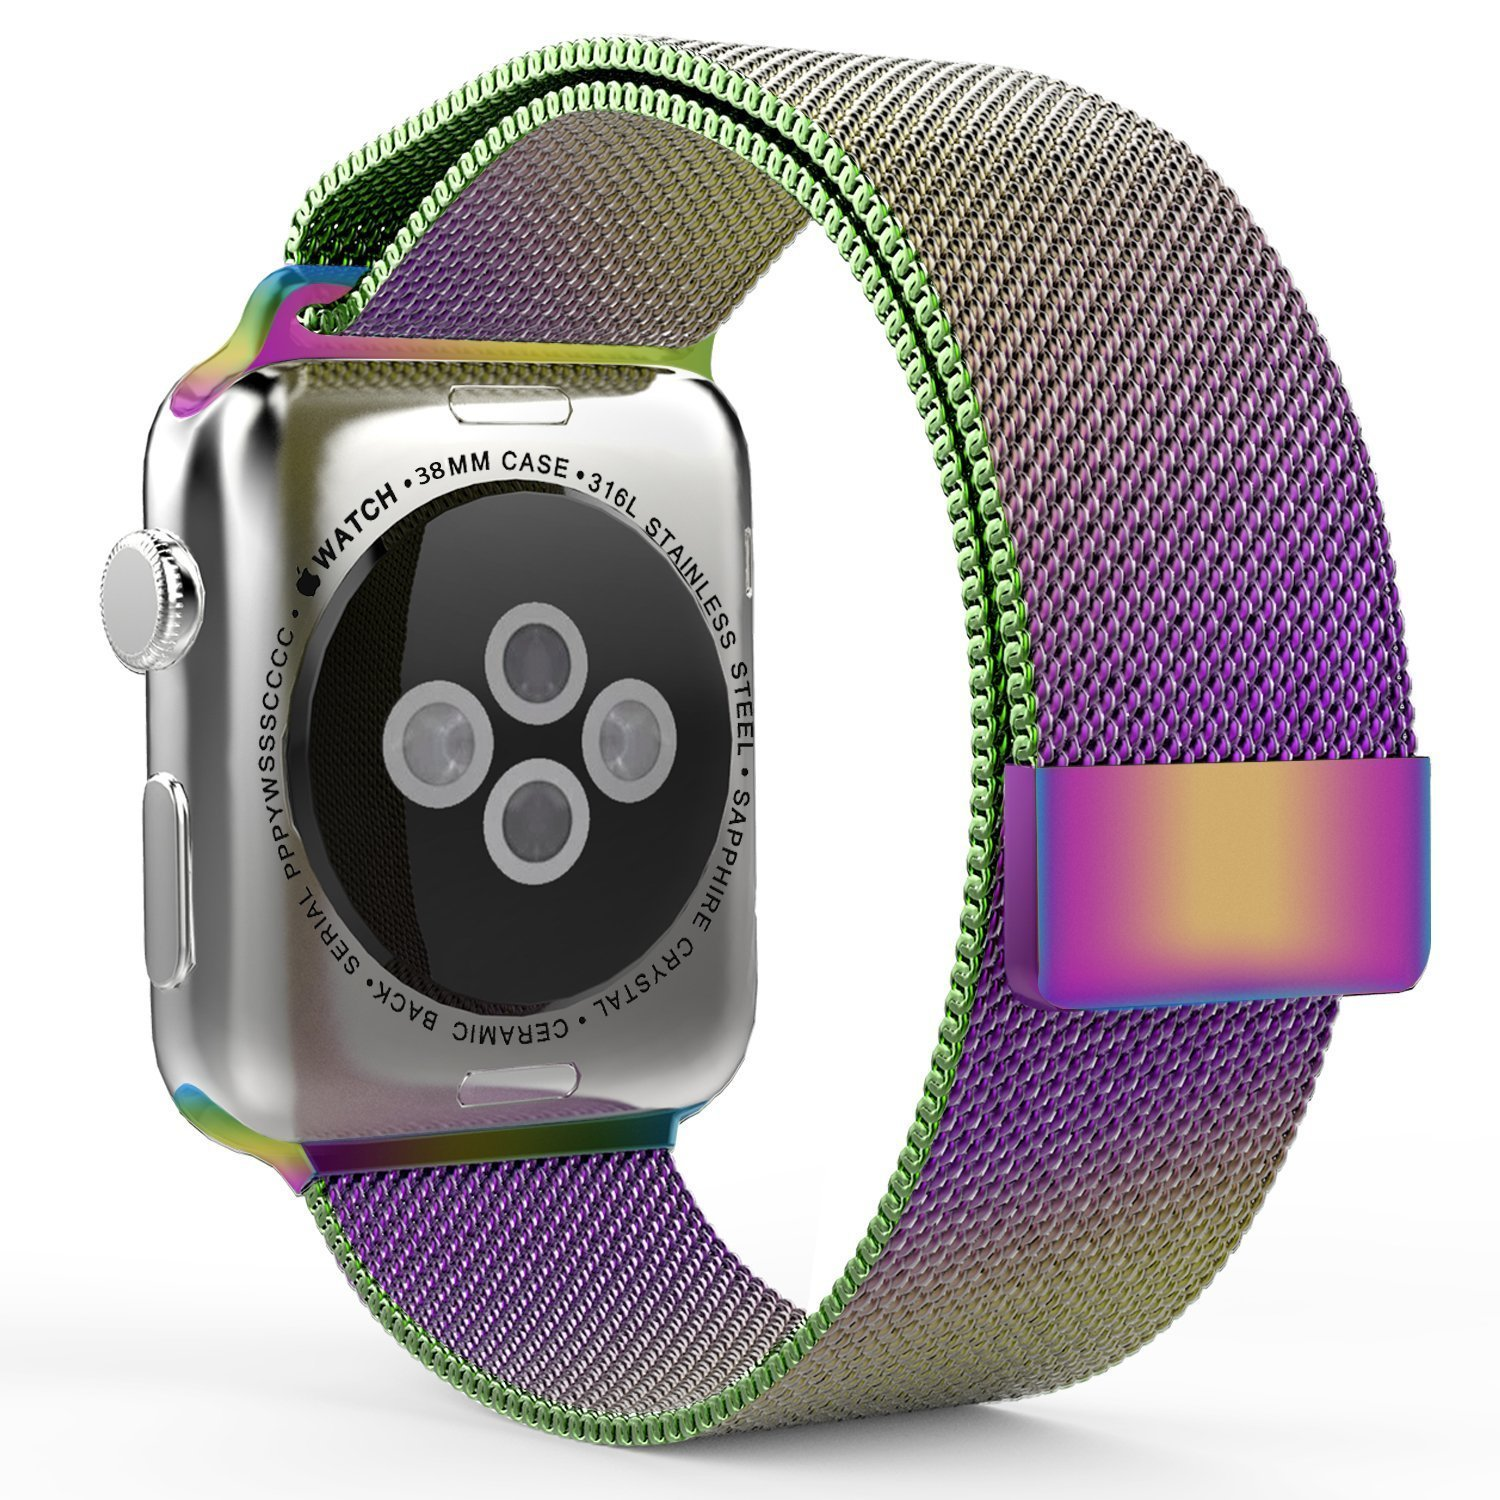 Apple Watch Band, 38mm Milanese Loop Stainless Steel Bracelet Smart Watch Strap Band with Unique Magnet Lock for iWatch All Models No Buckle Needed (colorful 38mm)